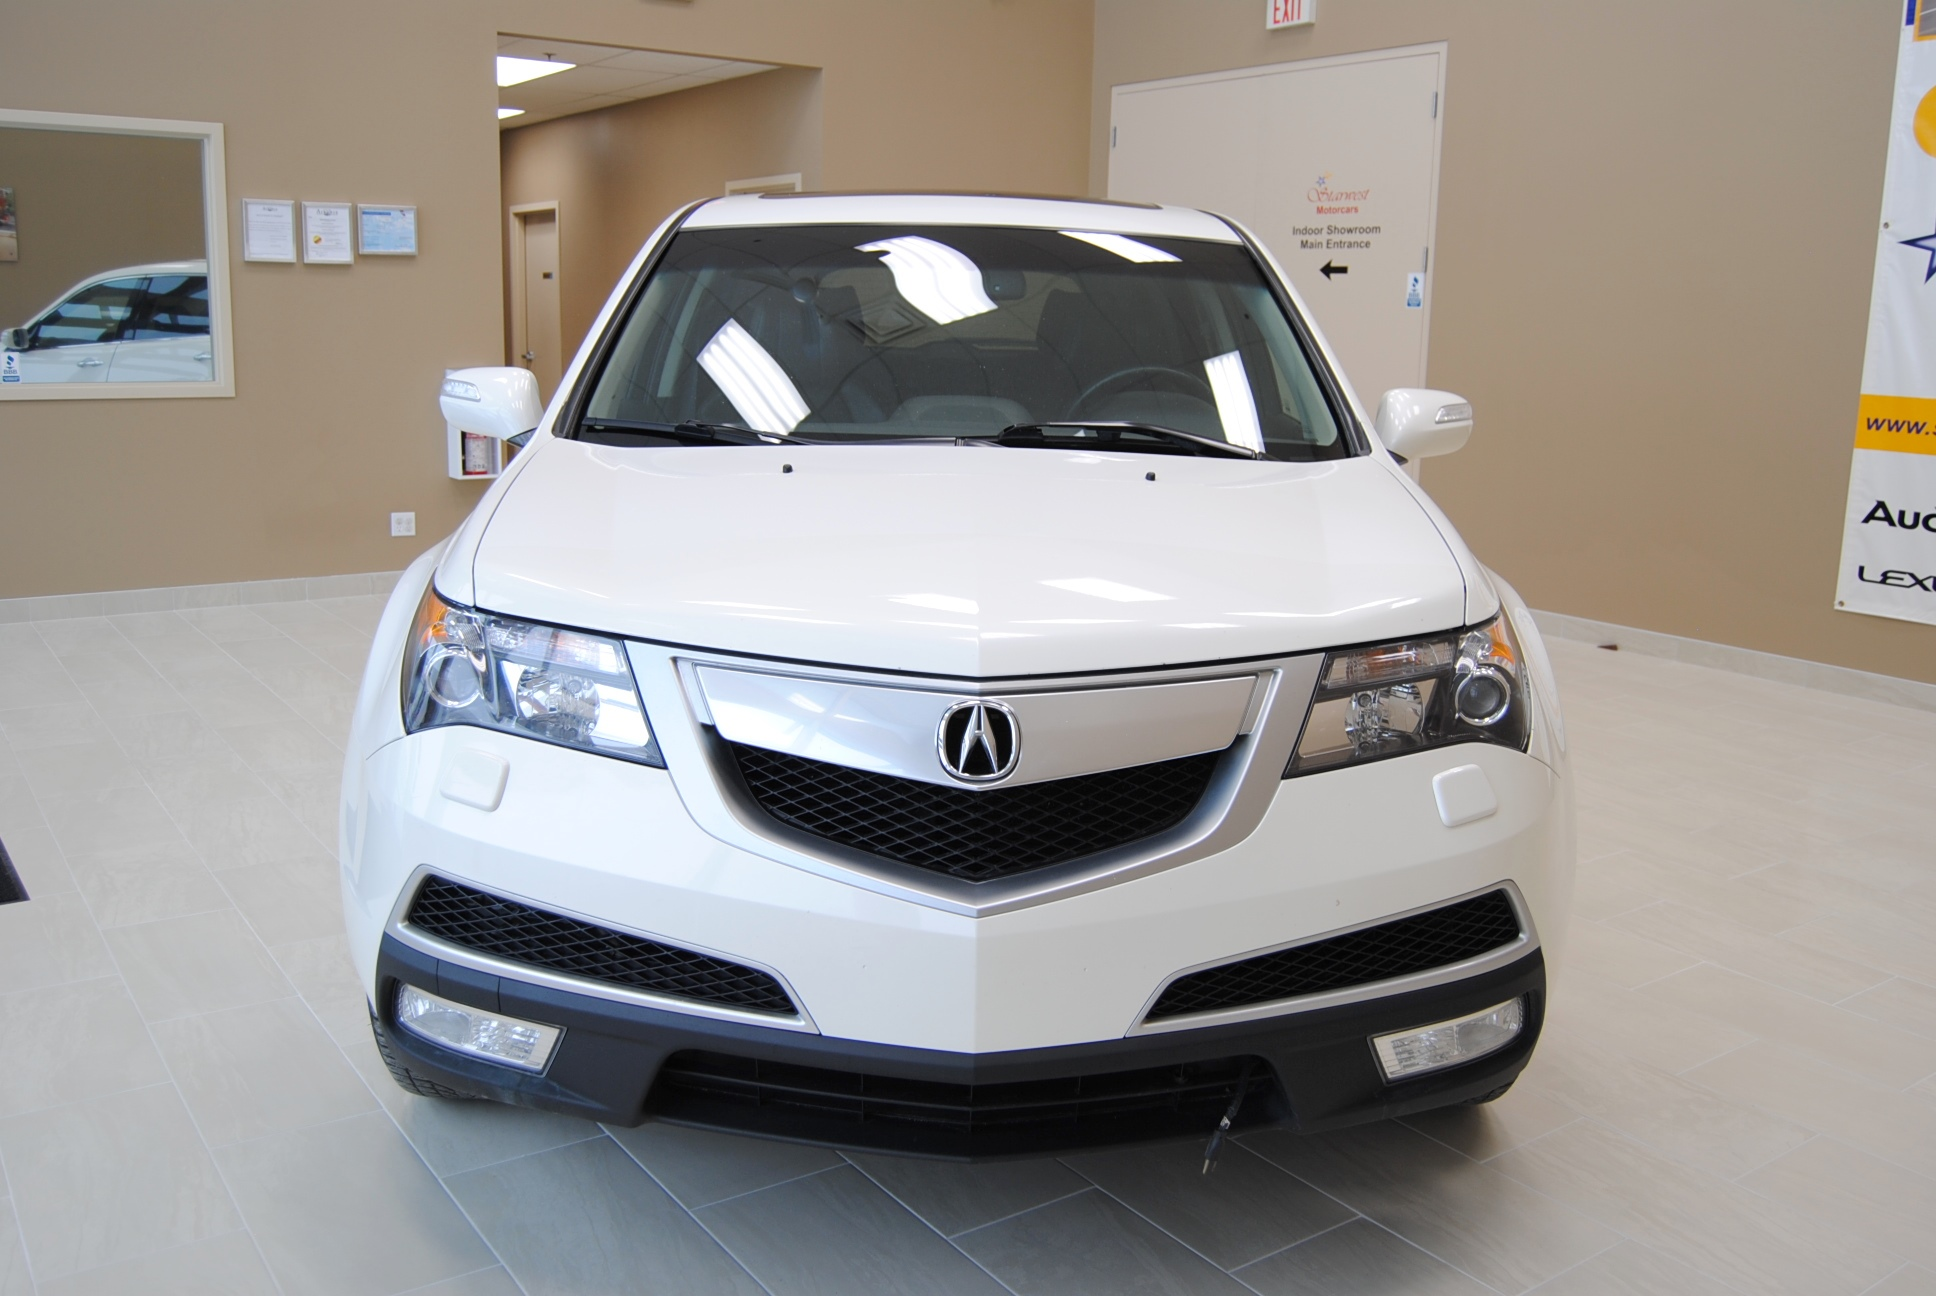 wheel mdx reviews stereo package interior all acura suv technology drive l price controls photos features